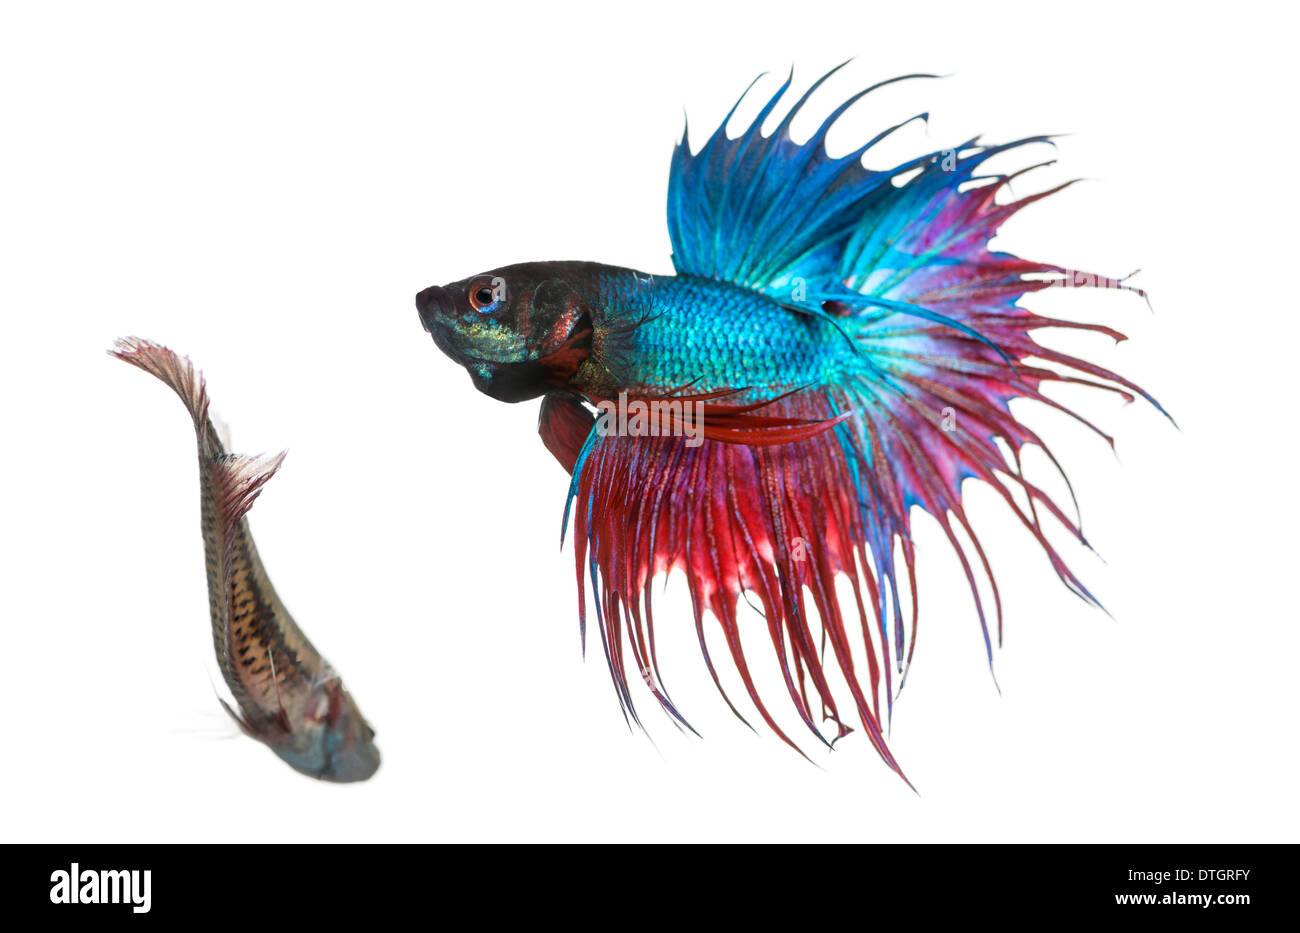 Male and female Siamese fighting fish in a courtship dance, Betta splendens, against white background - Stock Image